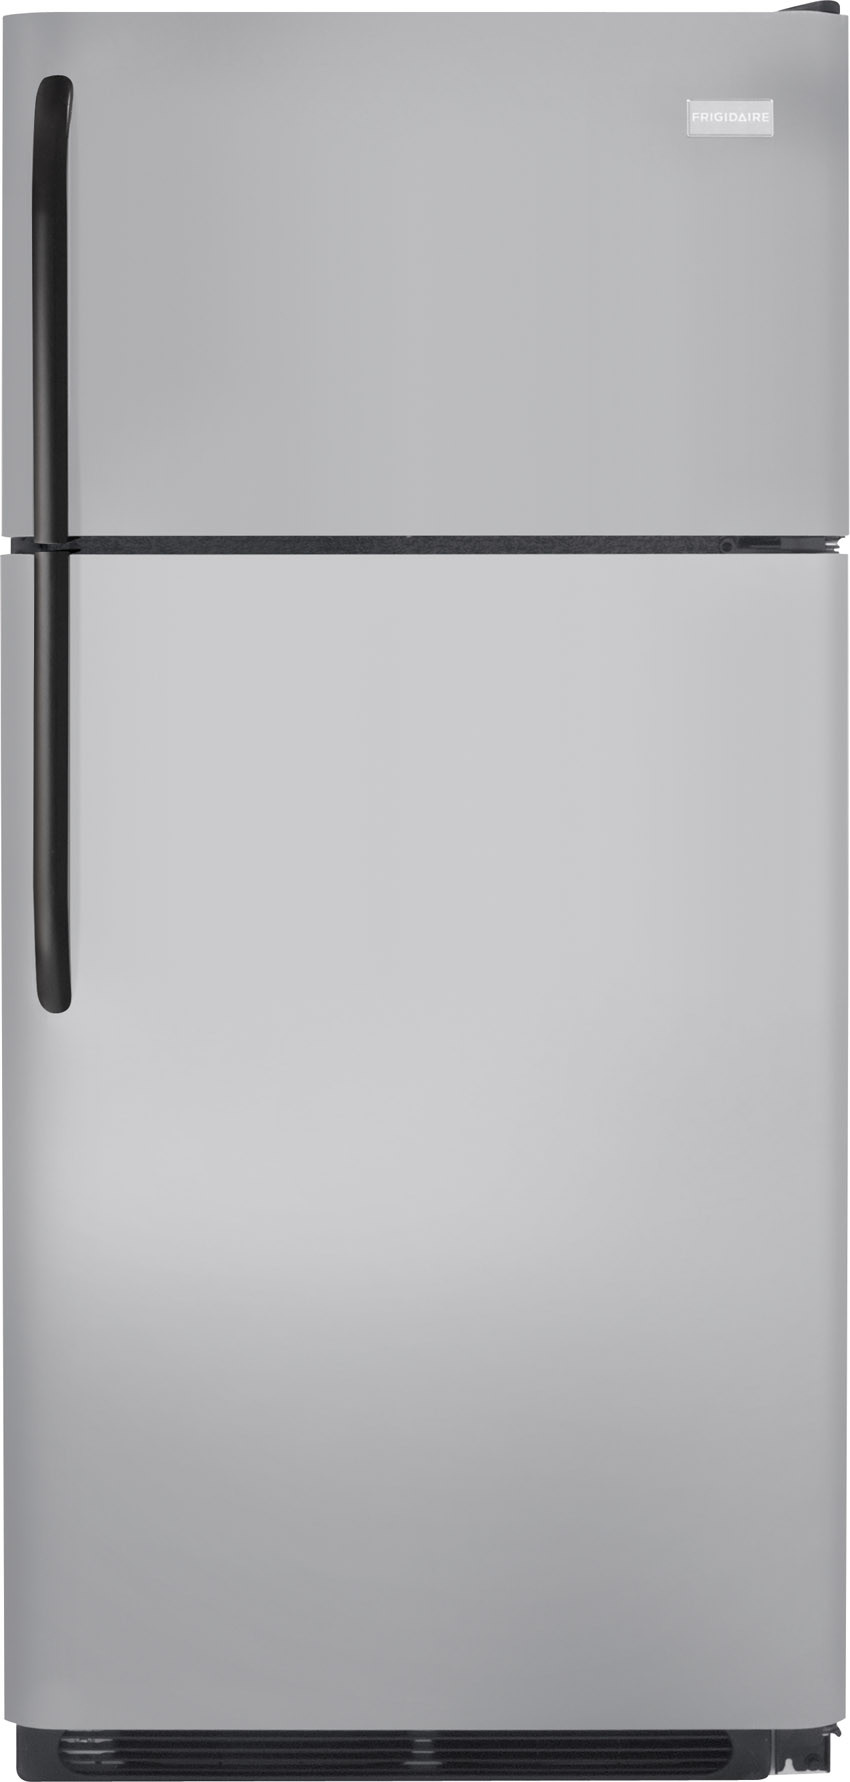 Ge 30 inch side by side white refrigerator - Ge 30 Inch Side By Side White Refrigerator 22